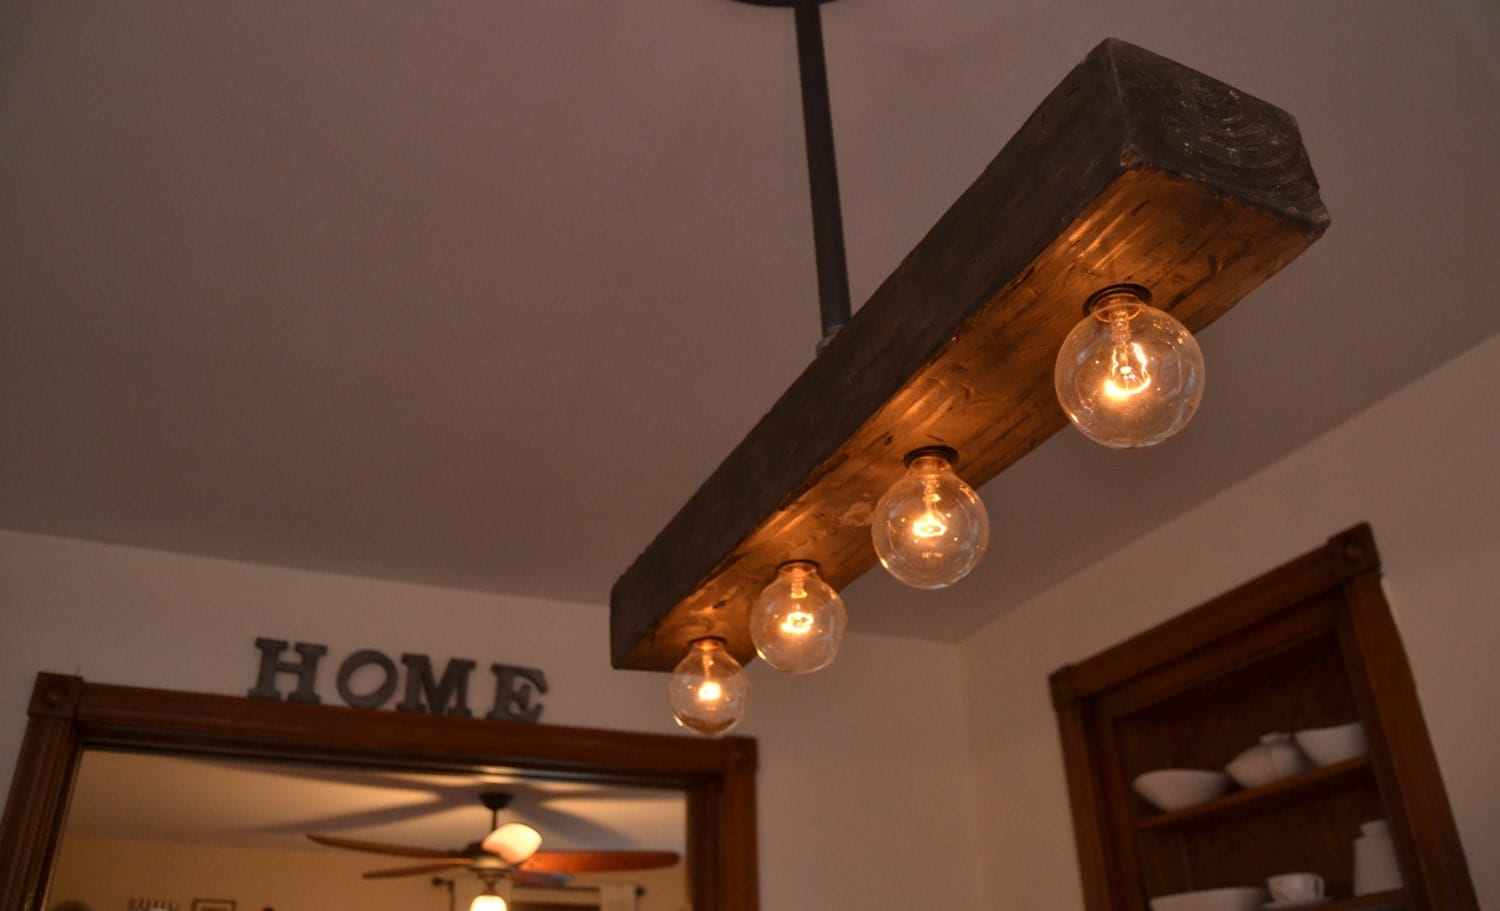 Reclaimed Wood Chandelier Light Fixture Farm Light : ilfullxfull940322112fuo3 from www.etsy.com size 1500 x 911 jpeg 182kB